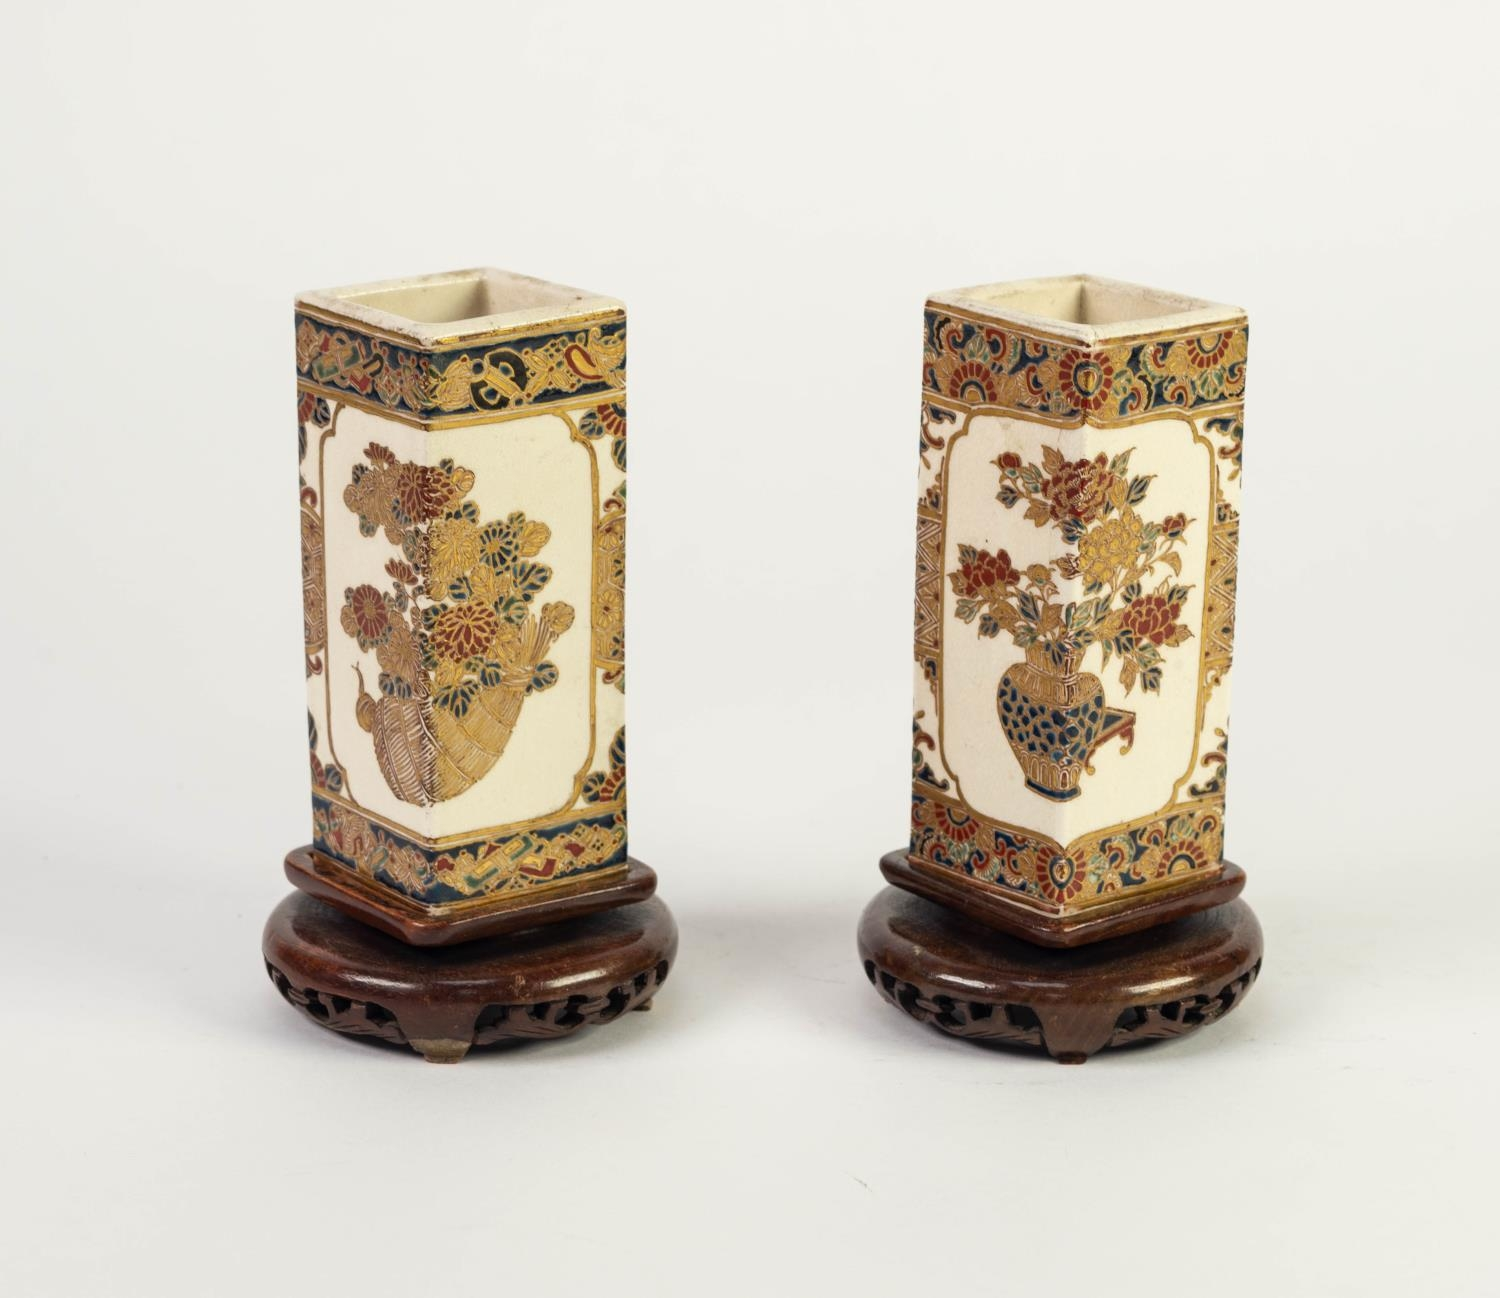 PAIR OF JAPANESE MEIJI PERIOD SATSUMA POTTERY SQUARE SECTION SMALL VASES, each painted with - Image 2 of 4